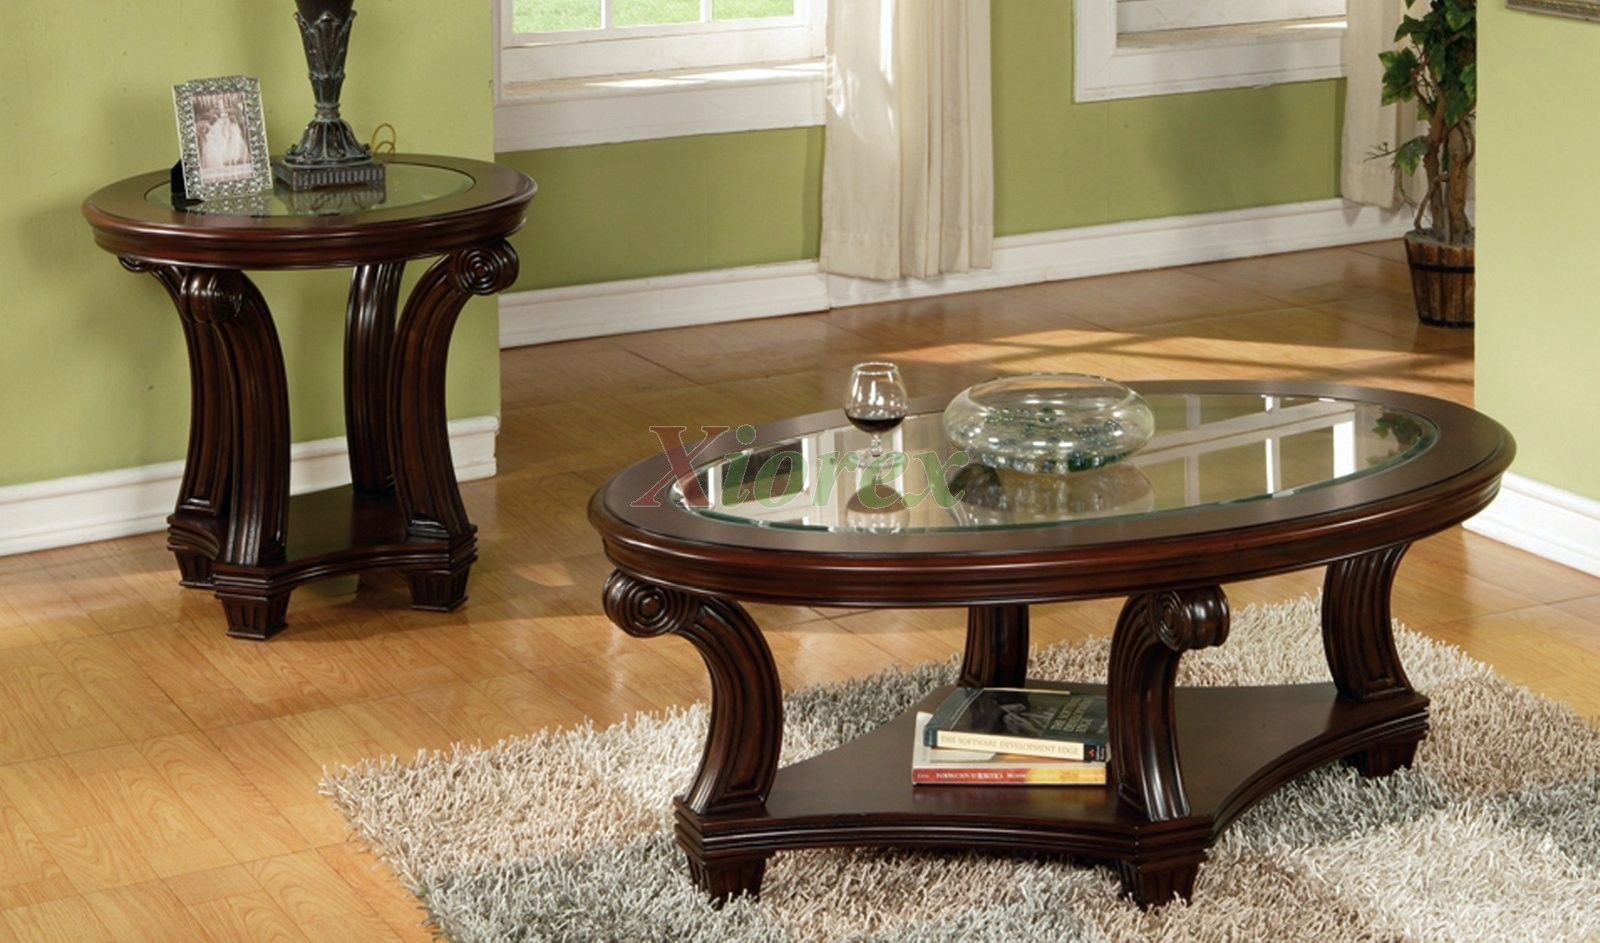 Set Of 3 Glass Tables: 9 Best Collection Of Glass Coffee And End Tables Modern